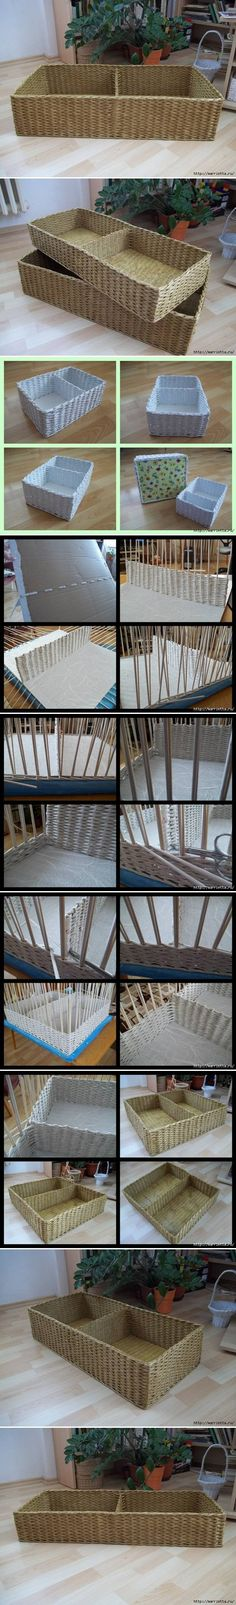 DIY Newspaper Basket with Compartments Follow Us on Facebook -->> http://www.facebook.com/UsefulDiy